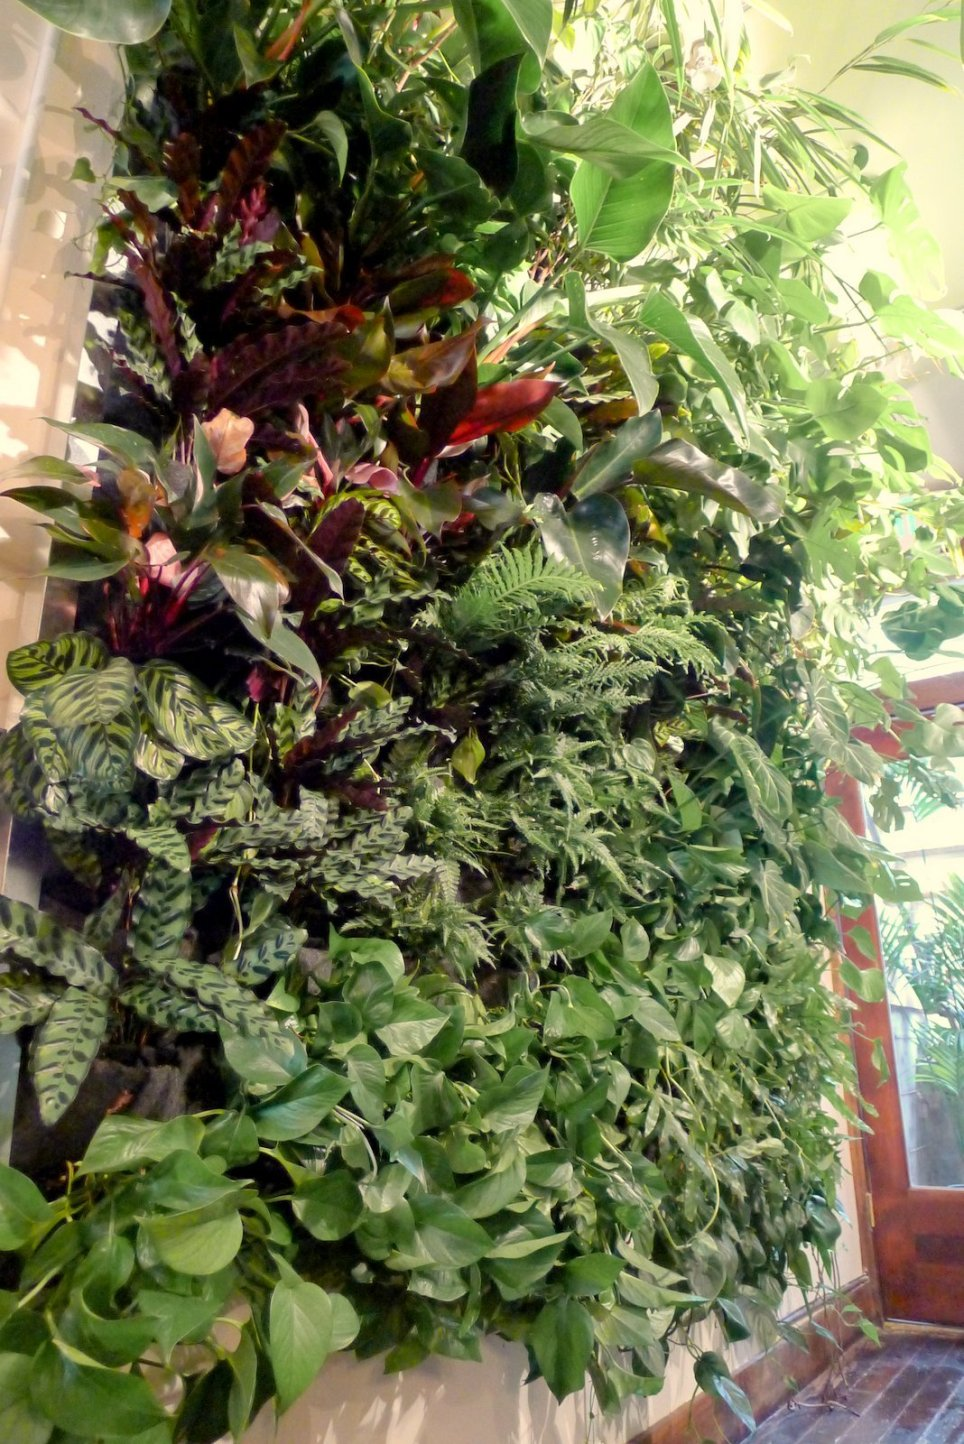 Chris-Bribach-Plants-On-Walls-Florafelt-Vertical-Garden-Population-Hair-Salaon-Jungle-3